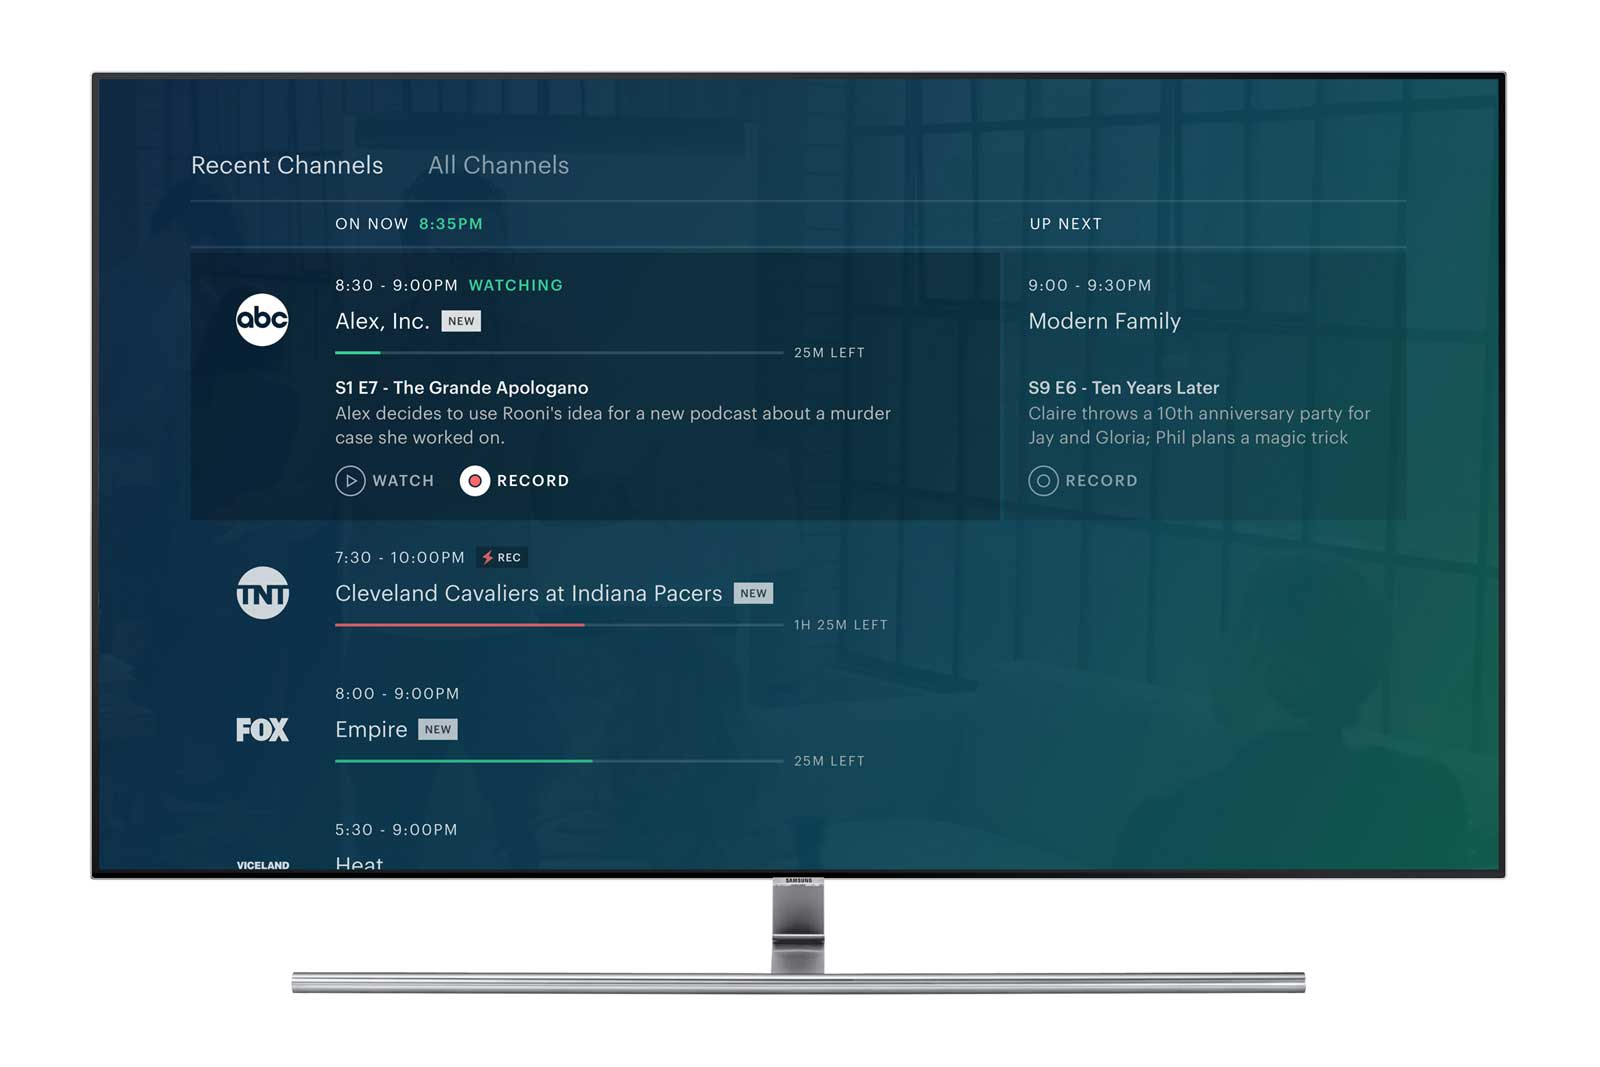 Hulu S New Guide Provides Fast Access To Live Tv